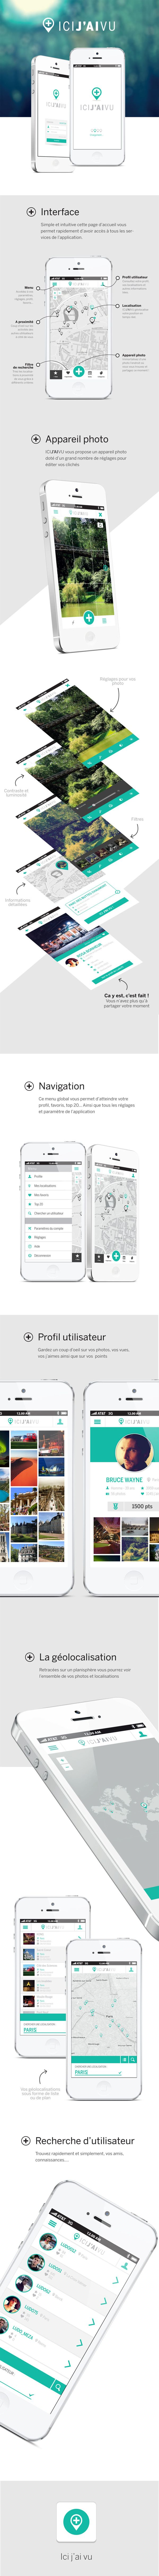 Application ICI J'AI VU by Nathalie Troucelier, via Behance